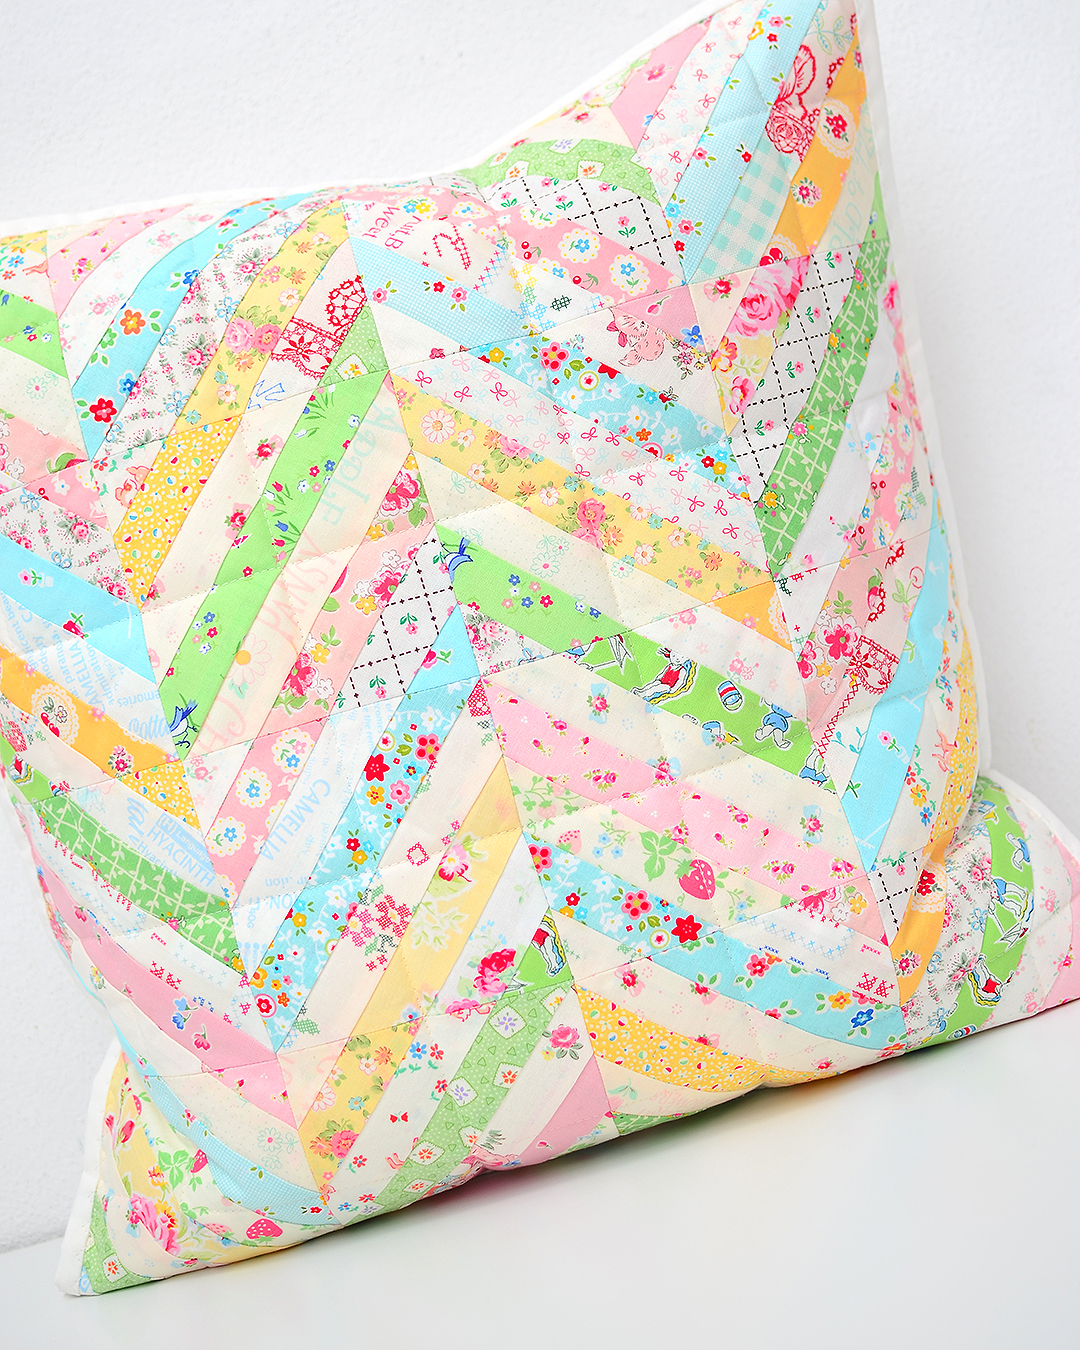 Foundation paper pieced Herringbone quilted pillow